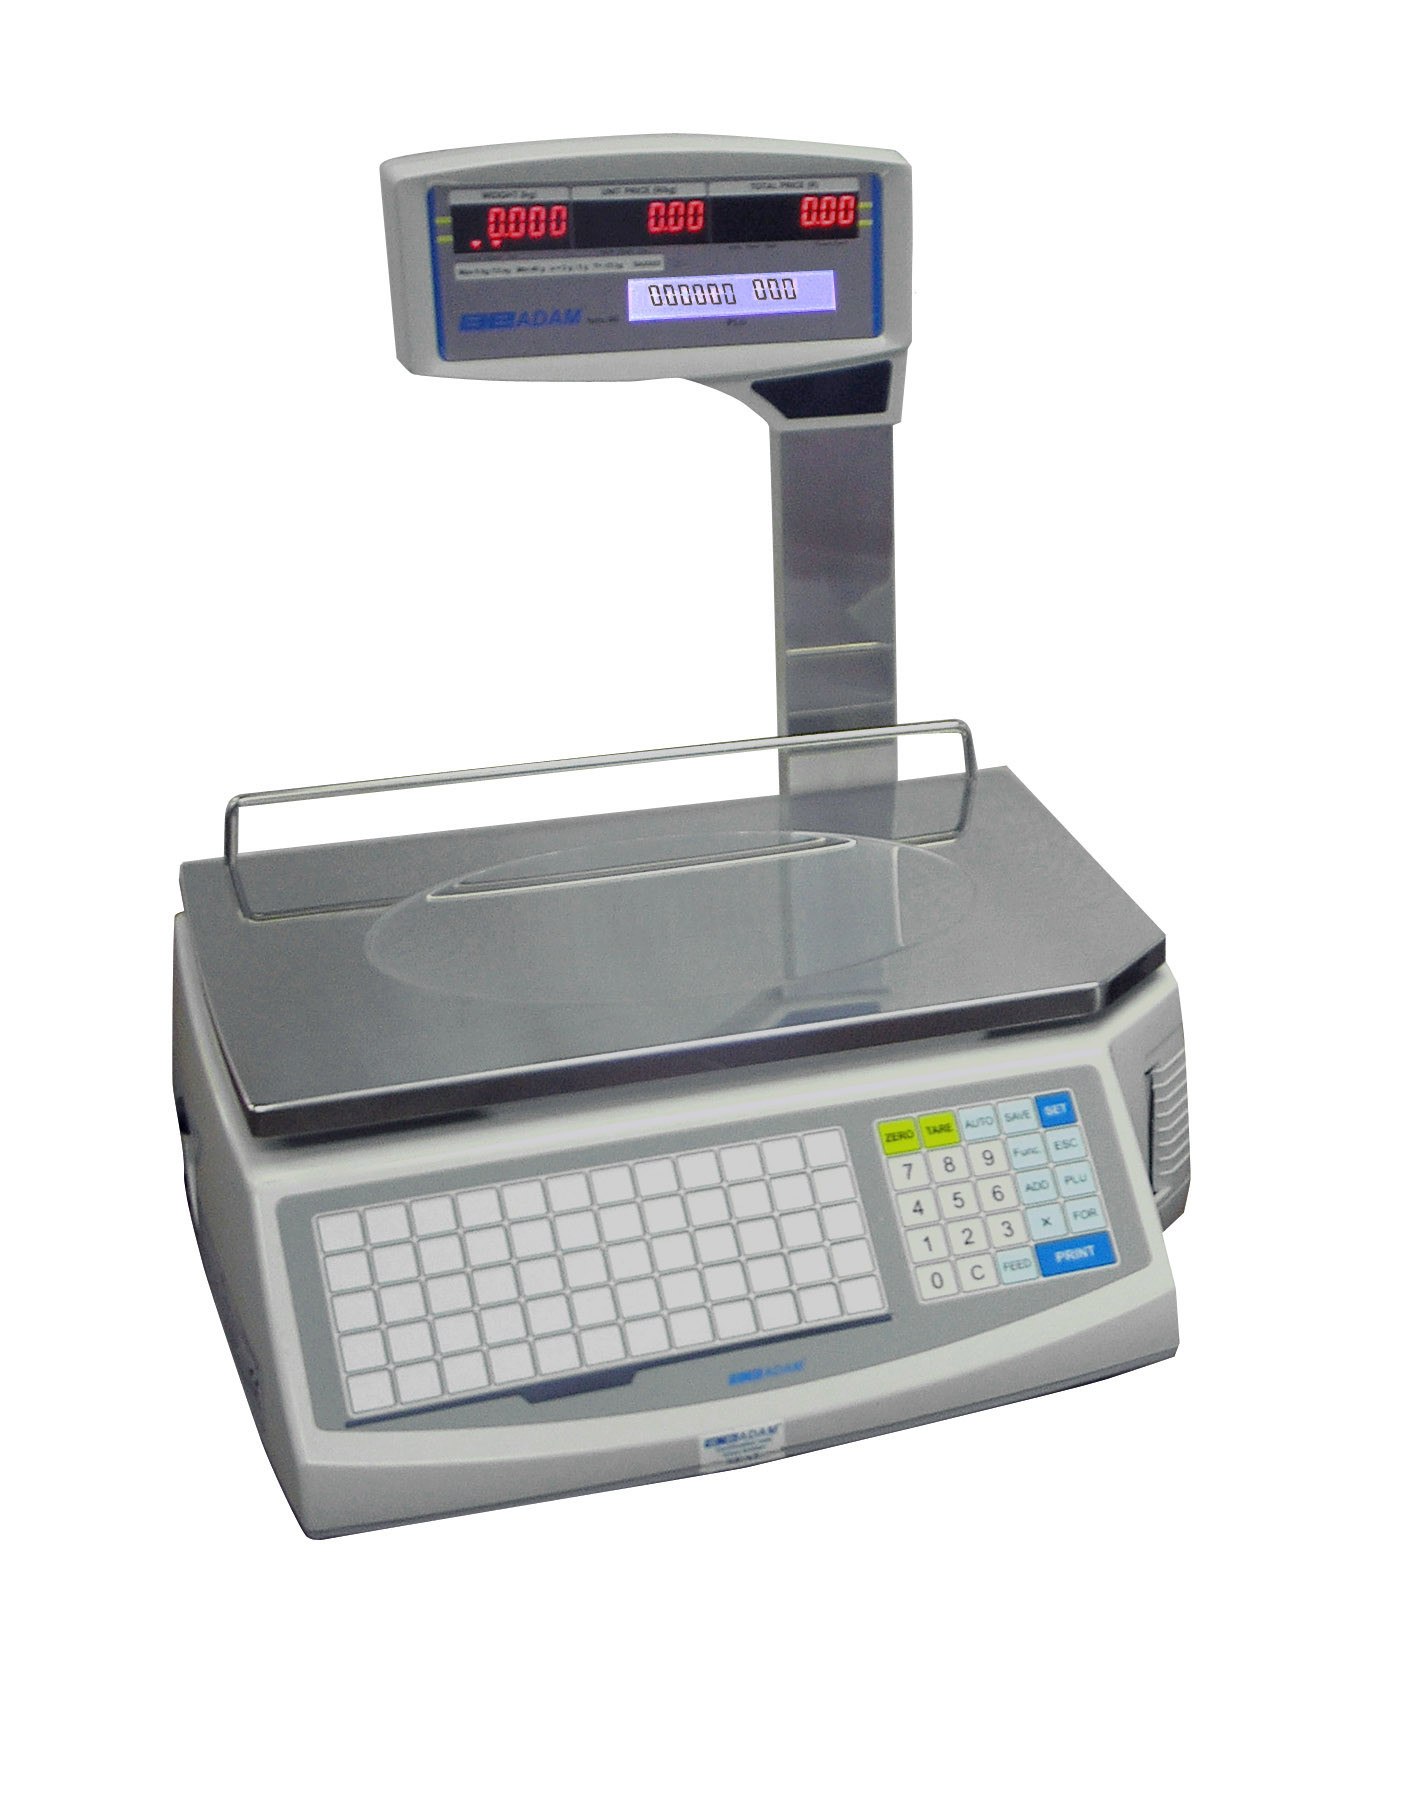 NETS Price Computing Label/Retail Scales